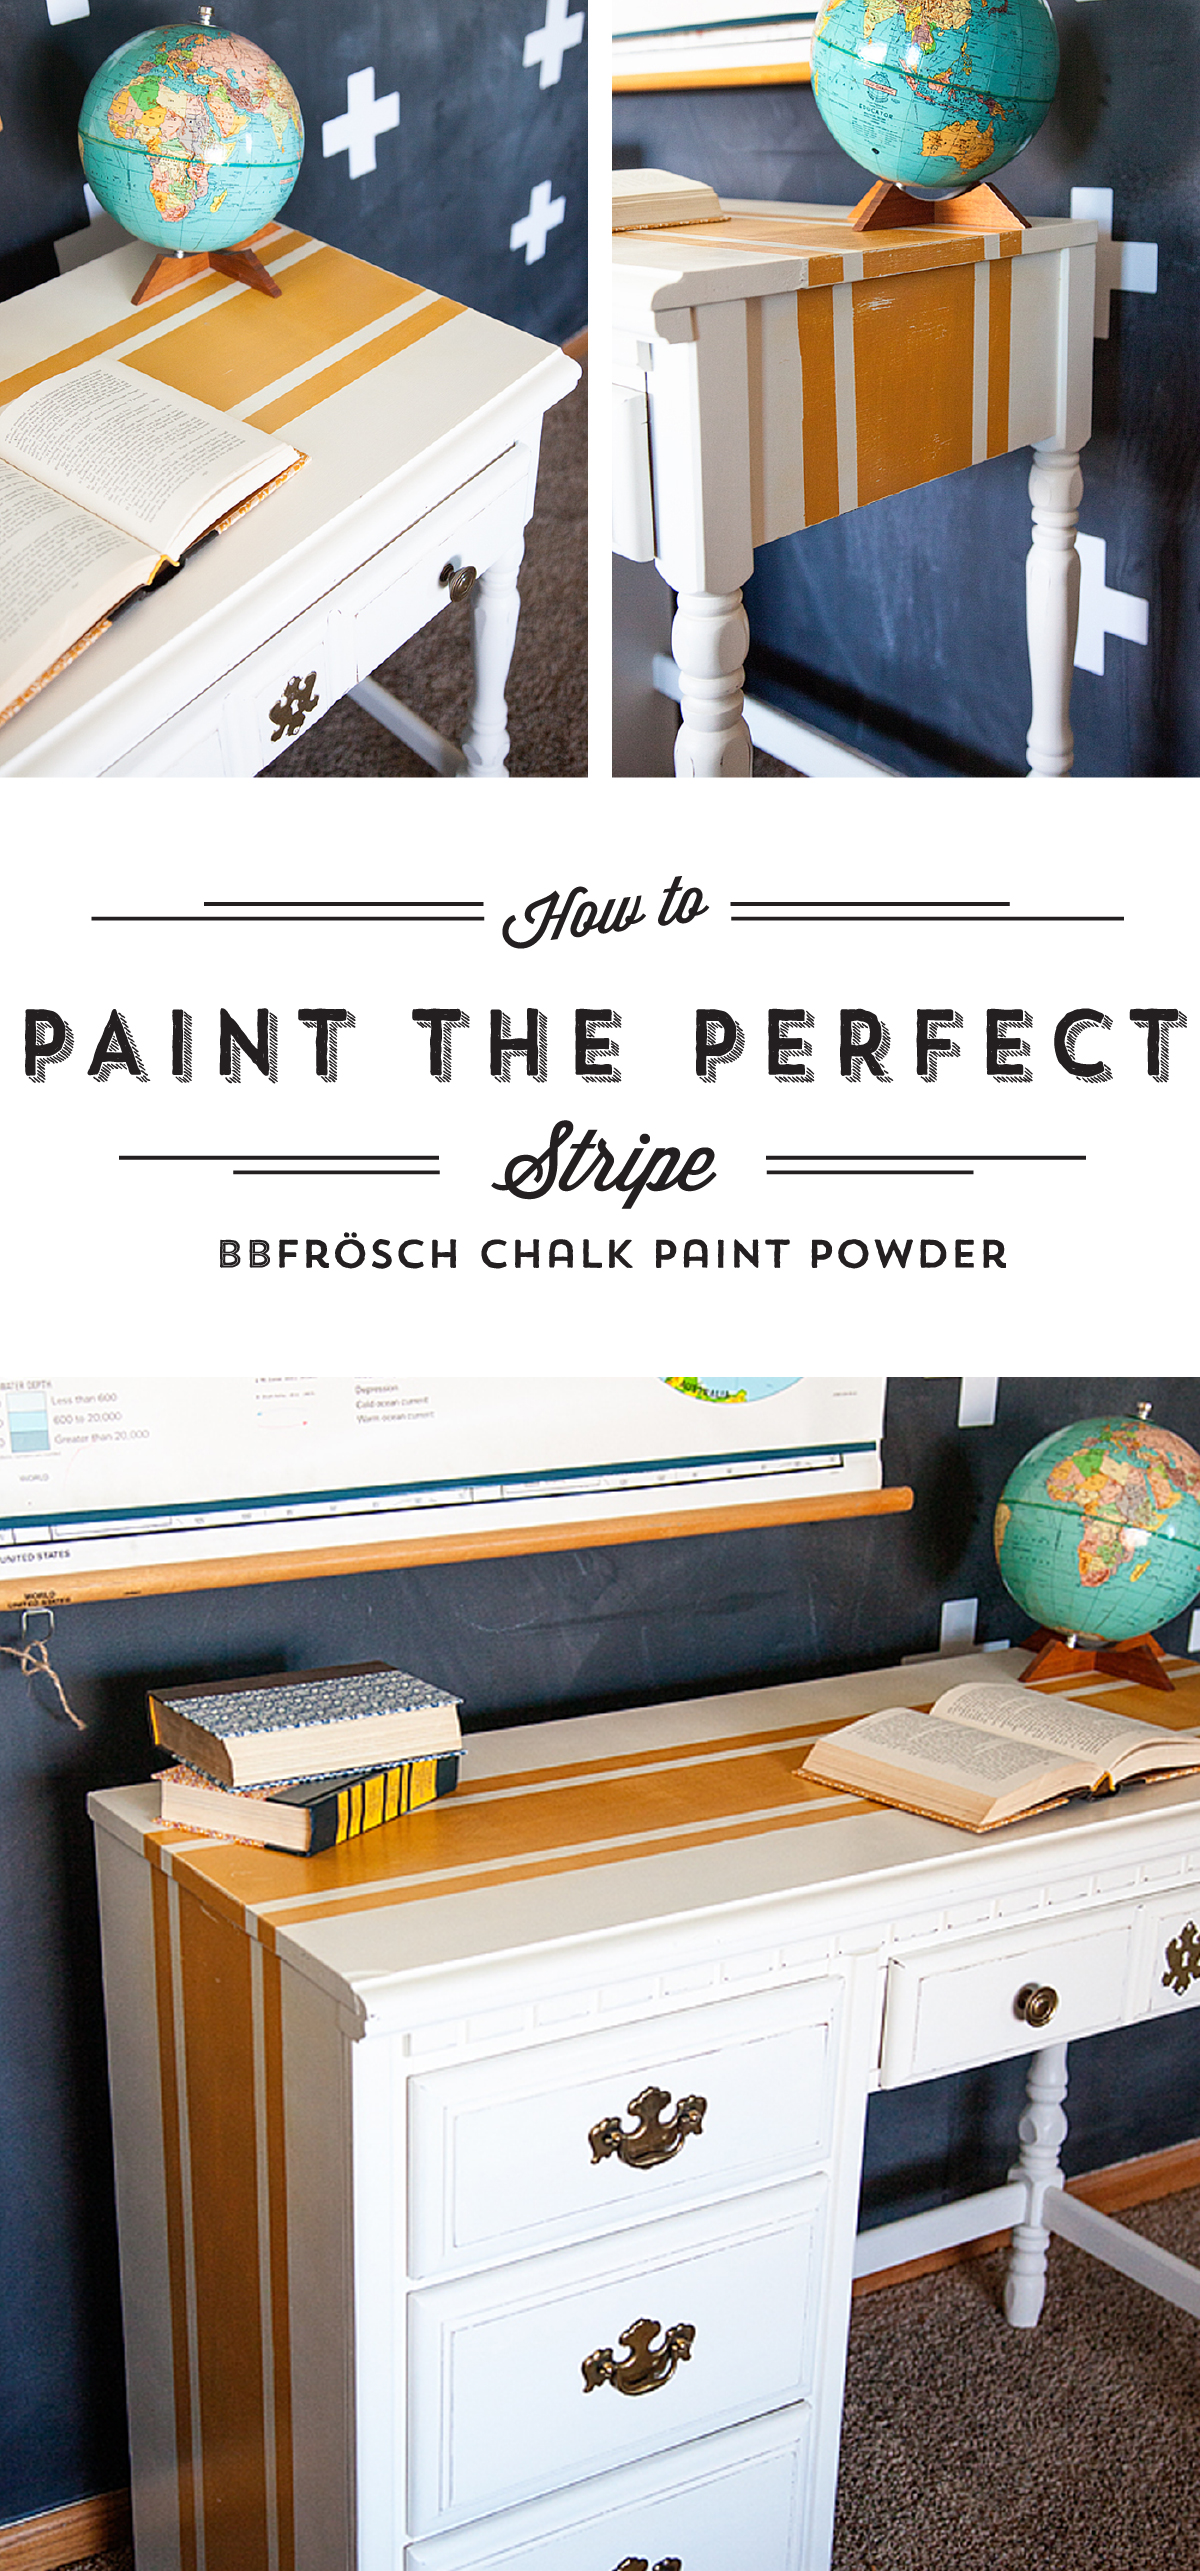 How To Paint Perfect Stripes With BB Frösch